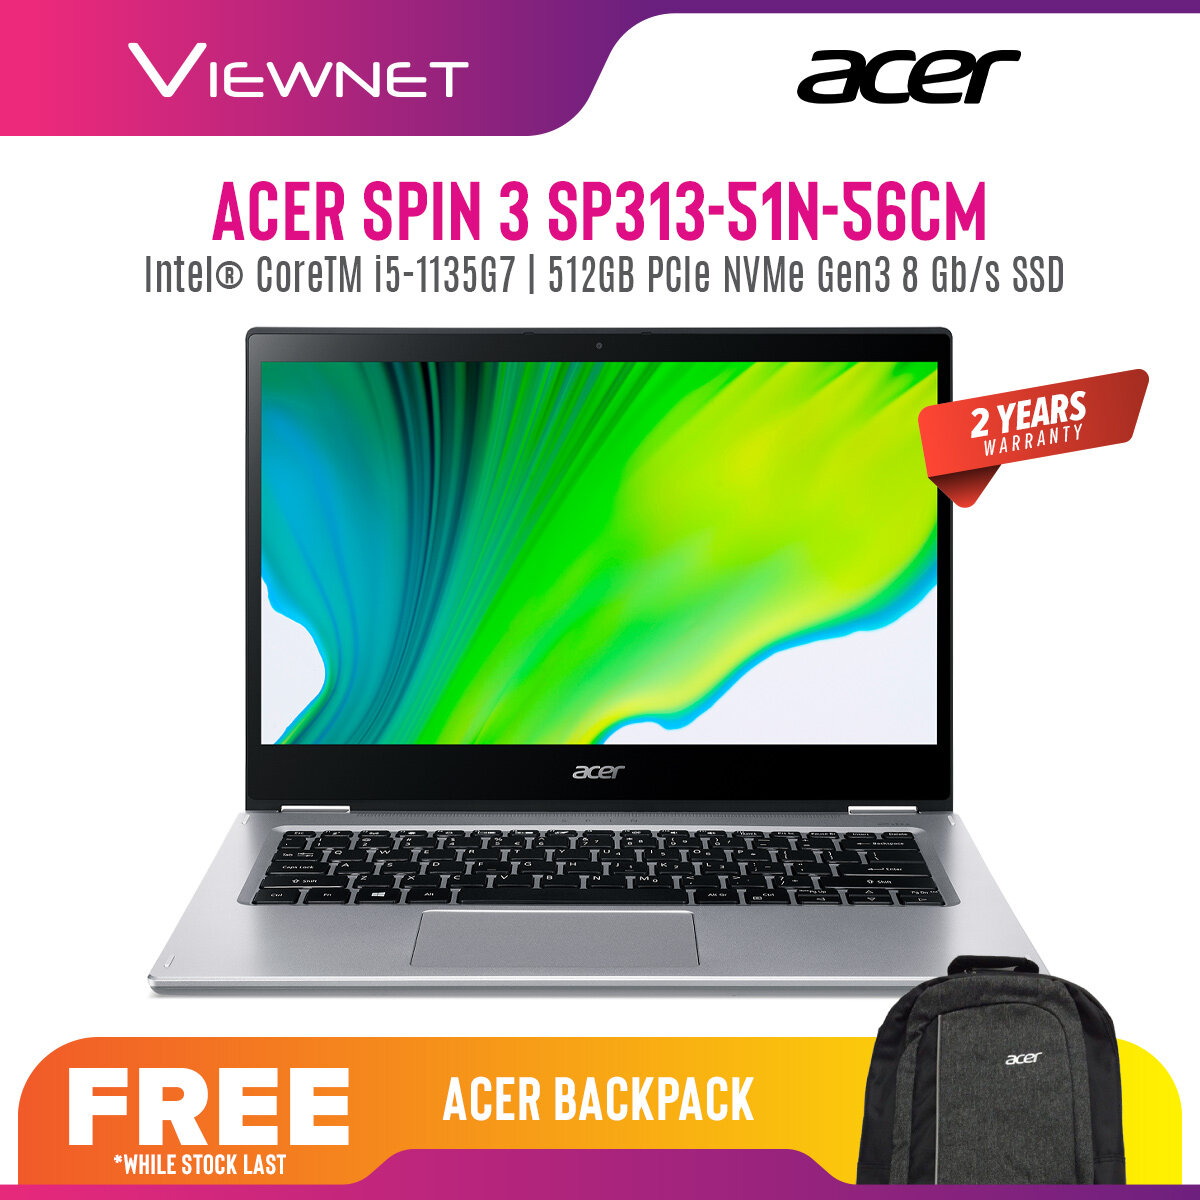 ACER SPIN 3 SP313-51N-56CM 13.3 IPS WQXGA 2k Touch (CORE i5-1135G7,8GB DDR4,512GB SSD,IRIS GRAPHICS,WIN10)